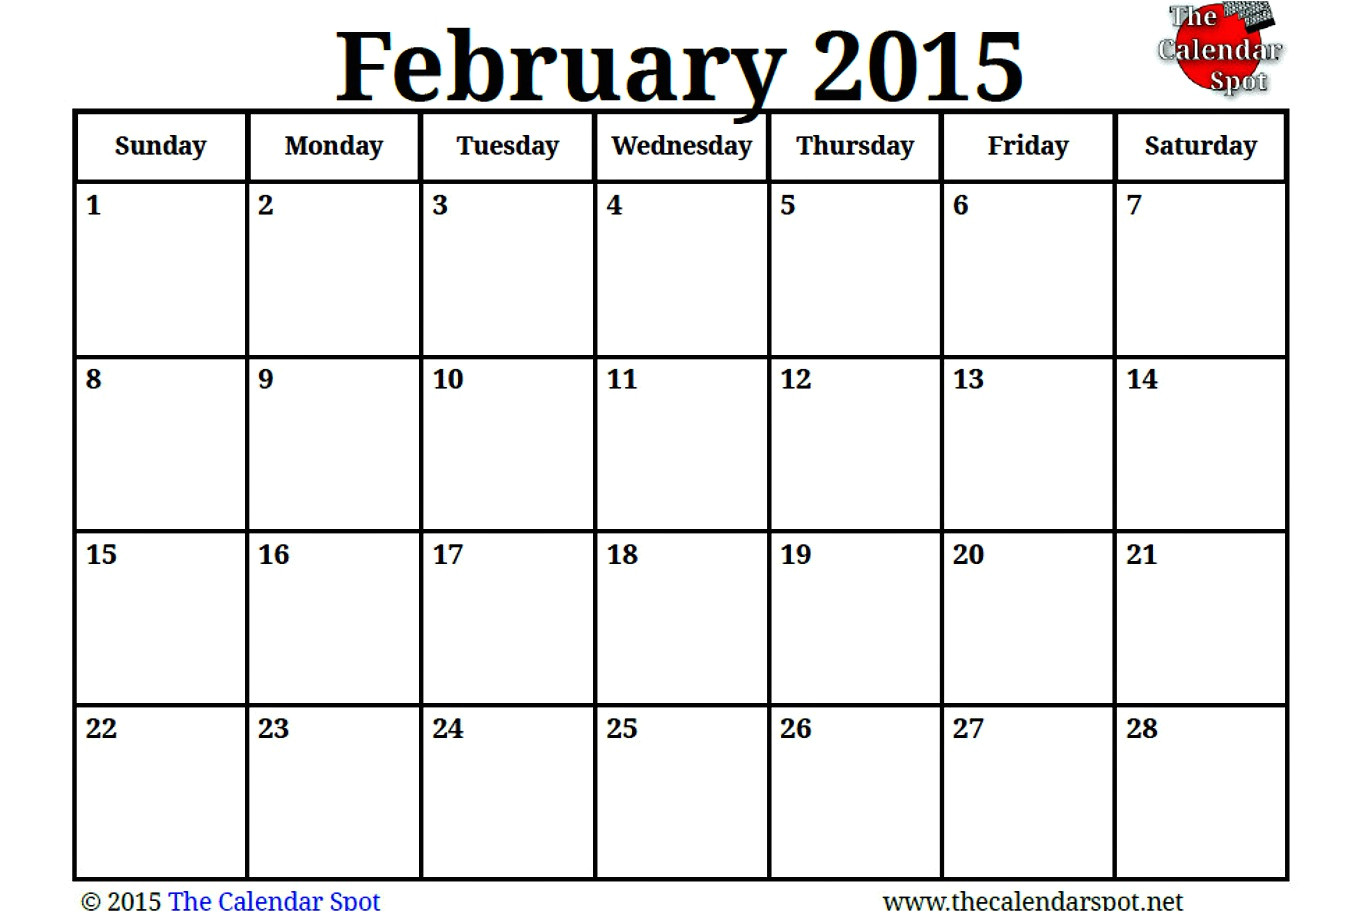 Blank Calendar Template February 2015 7 Best Images Of Blank Feb 2015 Calendar Printable Blank